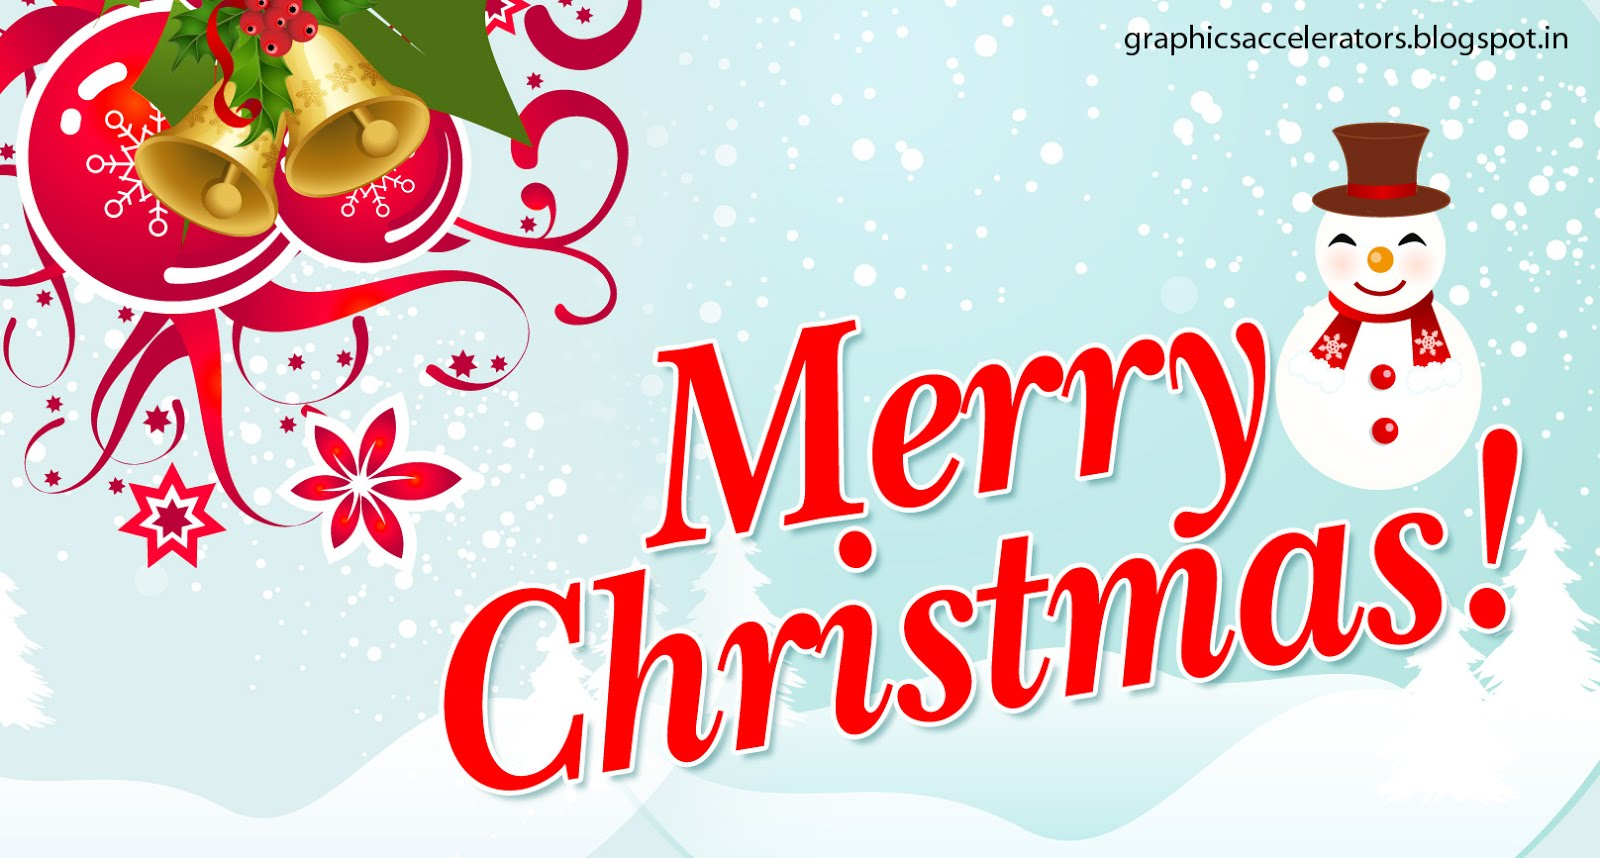 GraphicsAccelerators: Merry Christmas And Happy New Year 2017